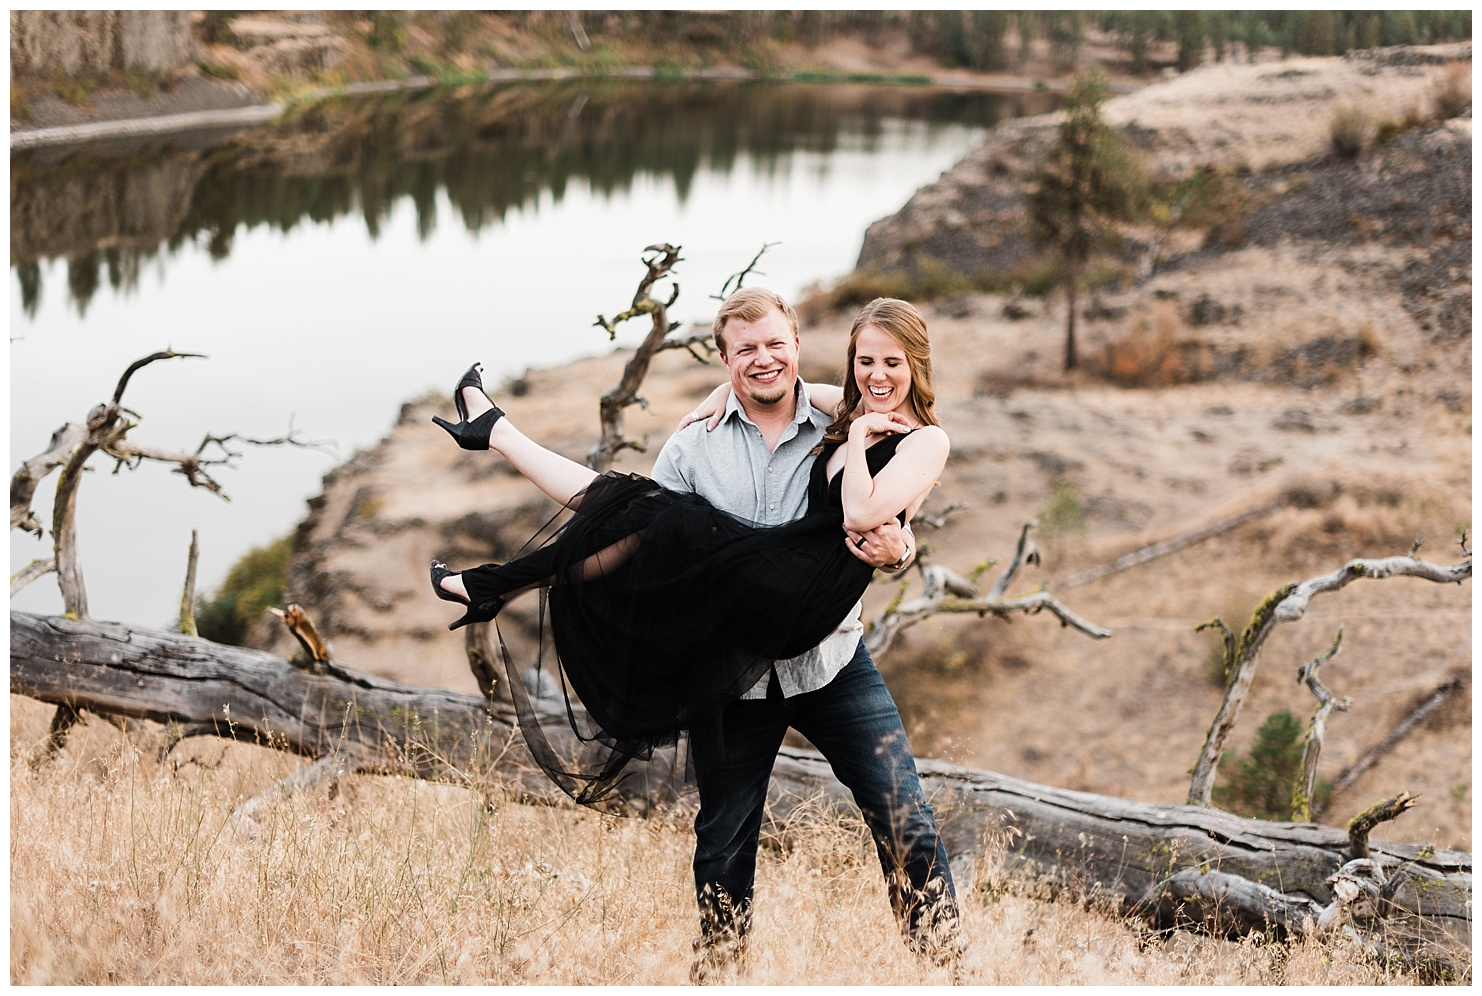 spokane engagement session by Forthright Photo